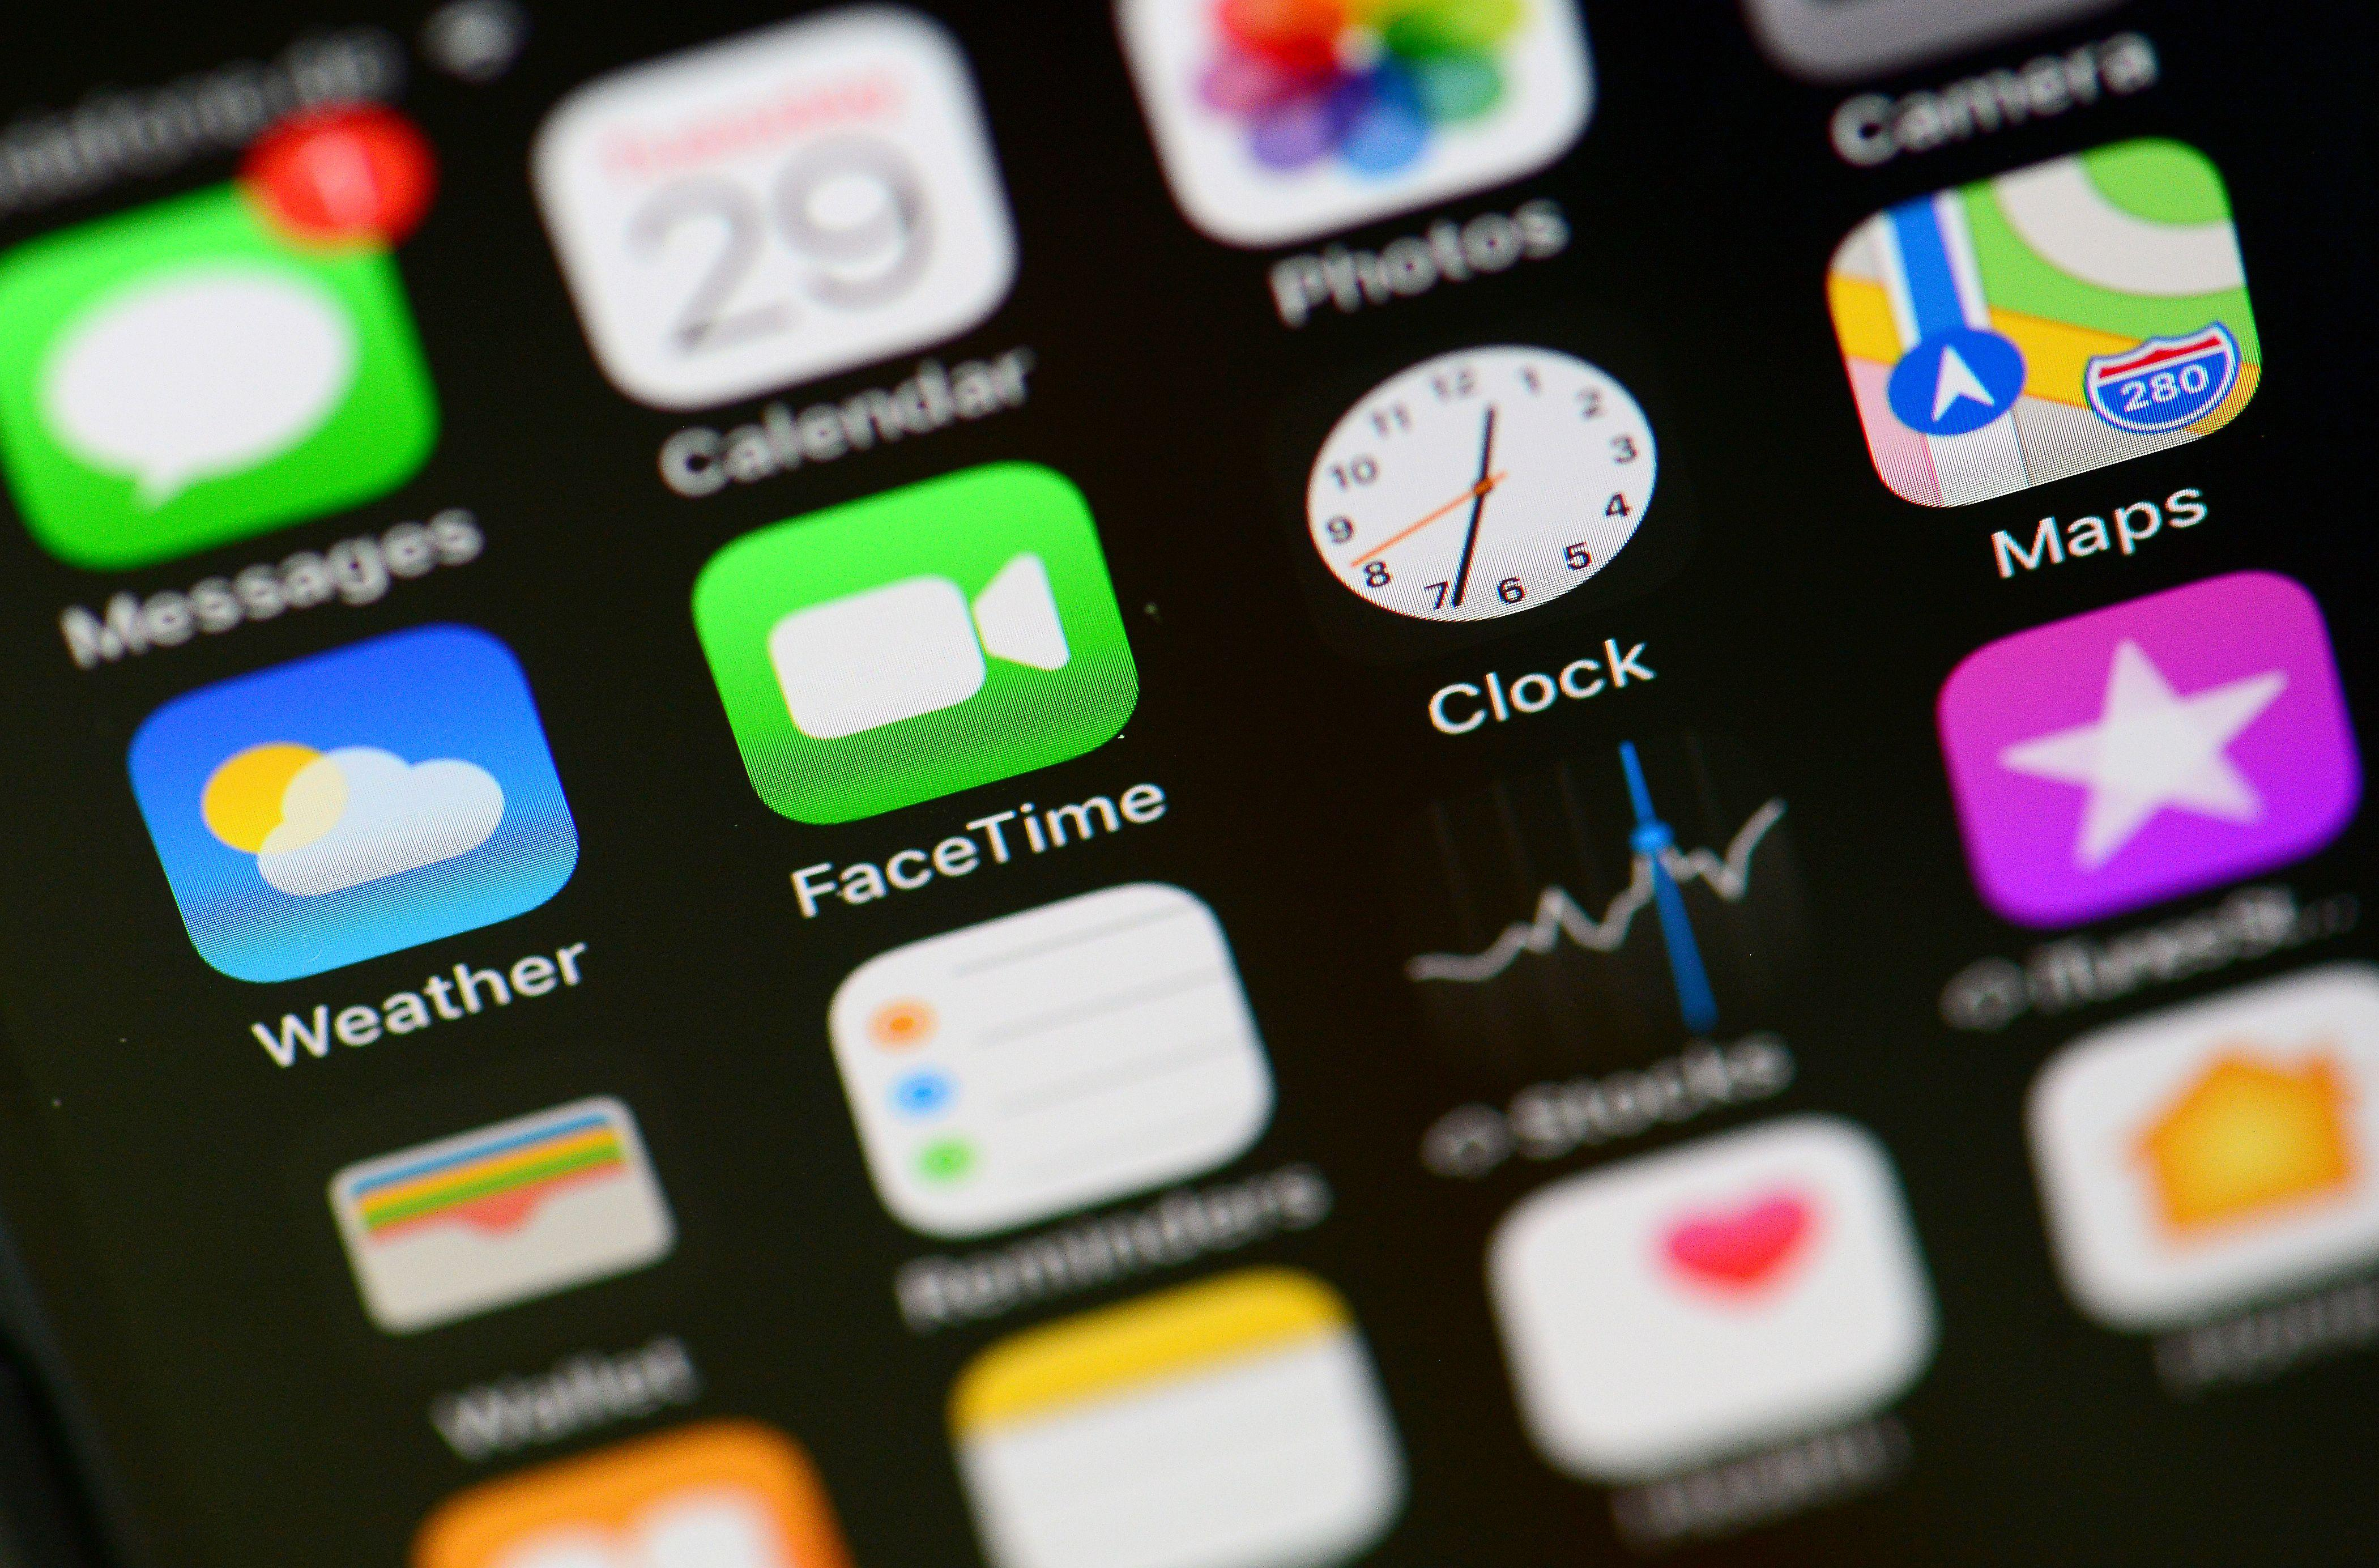 The logo of FaceTime (2nd in the second row from top) is pictured on an Iphone screen in Berlin on January 29, 2019. - A newly discovered FaceTime bug lets people hear and even see those they are reaching out to on iPhones using the video calling software, sparking privacy fears. (Photo by Odd ANDERSEN / AFP)        (Photo credit should read ODD ANDERSEN/AFP/Getty Images)